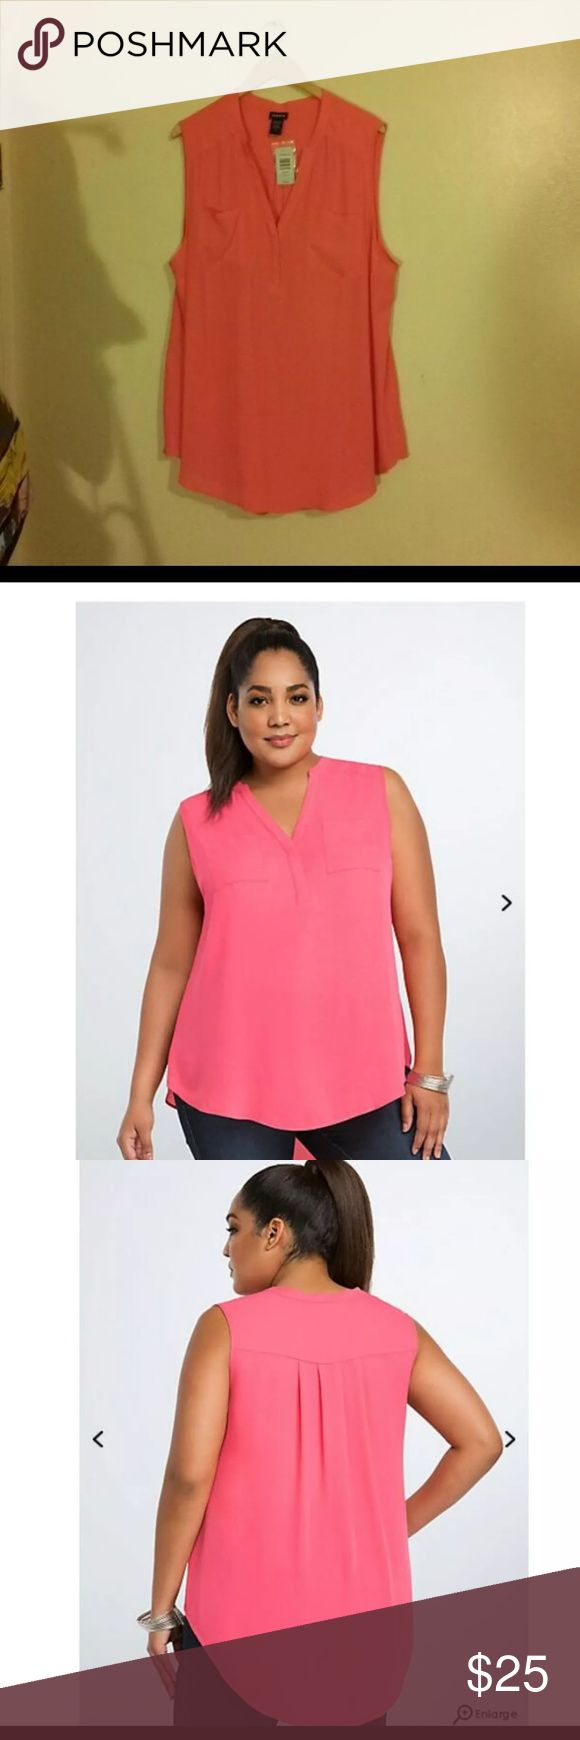 """Torrid Georgette Tank Top size 3 A no-nonsense front placket polishes up the sweet rose red (and semi-sheer) georgette, while the hi-lo style creates a built-in-breeze. Double breast pockets finish off the look. Size 3 measures 31 1/4"""" from shoulder, Polyester torrid Tops Blouses"""